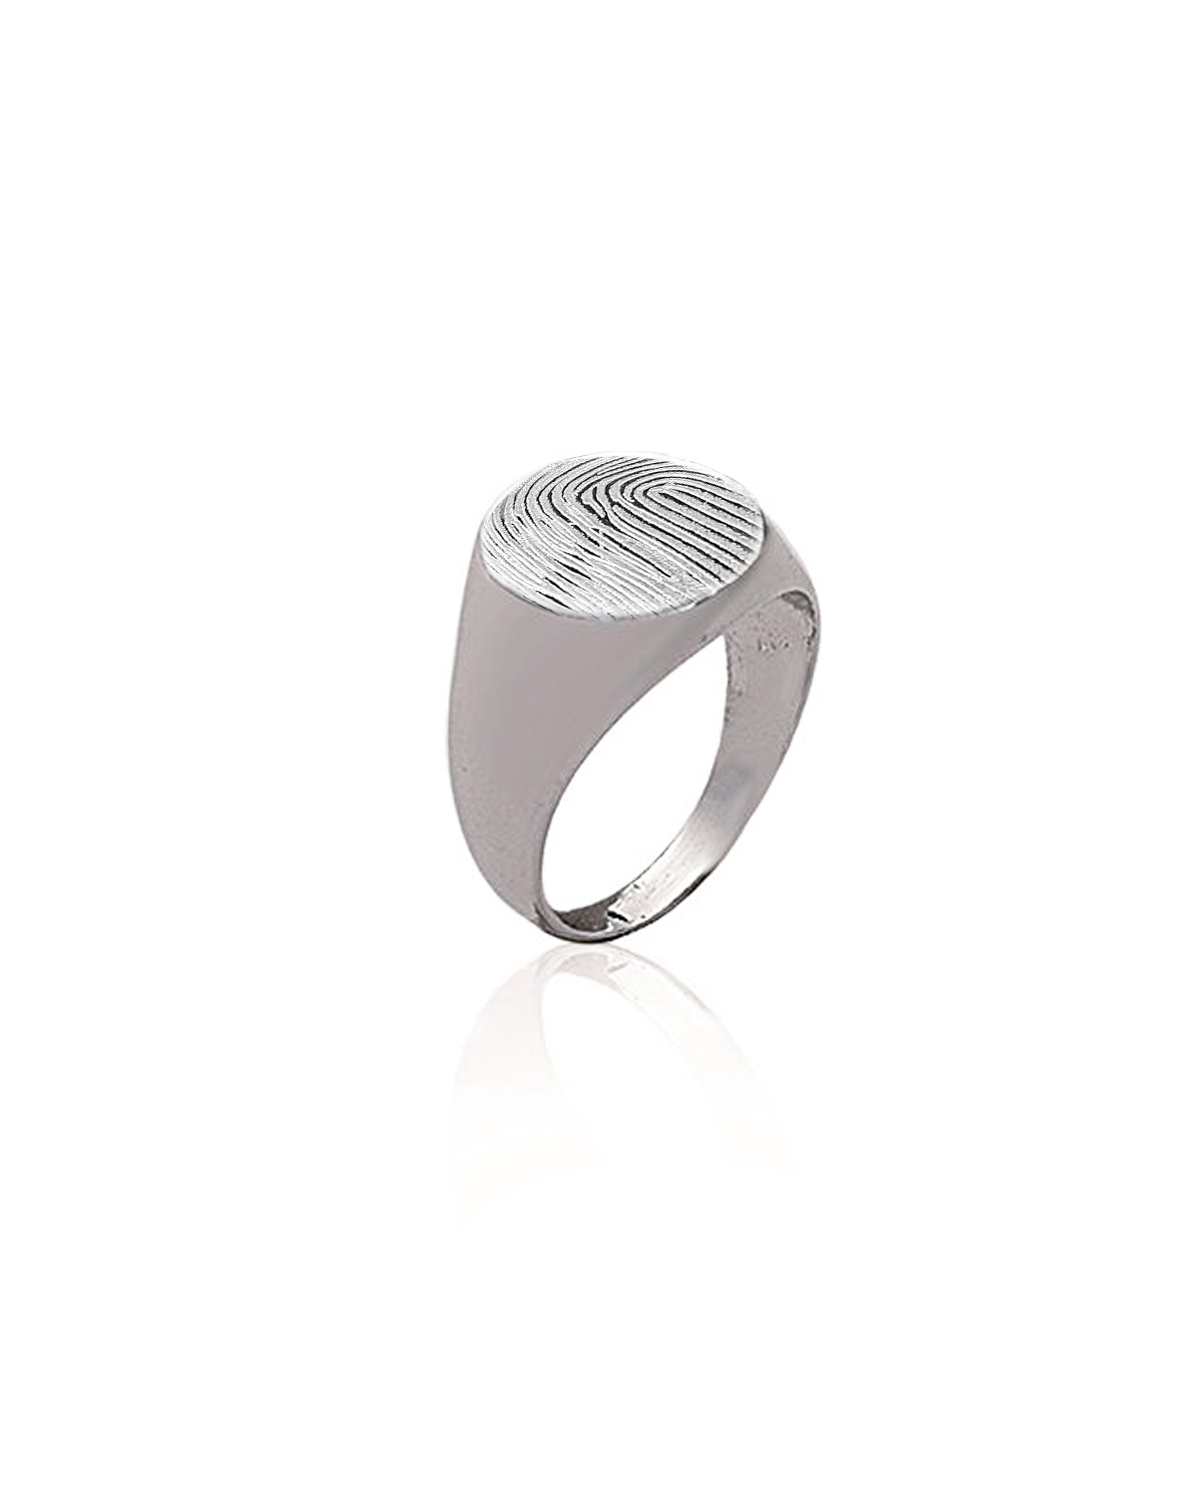 Signet Ring, Round, Silver